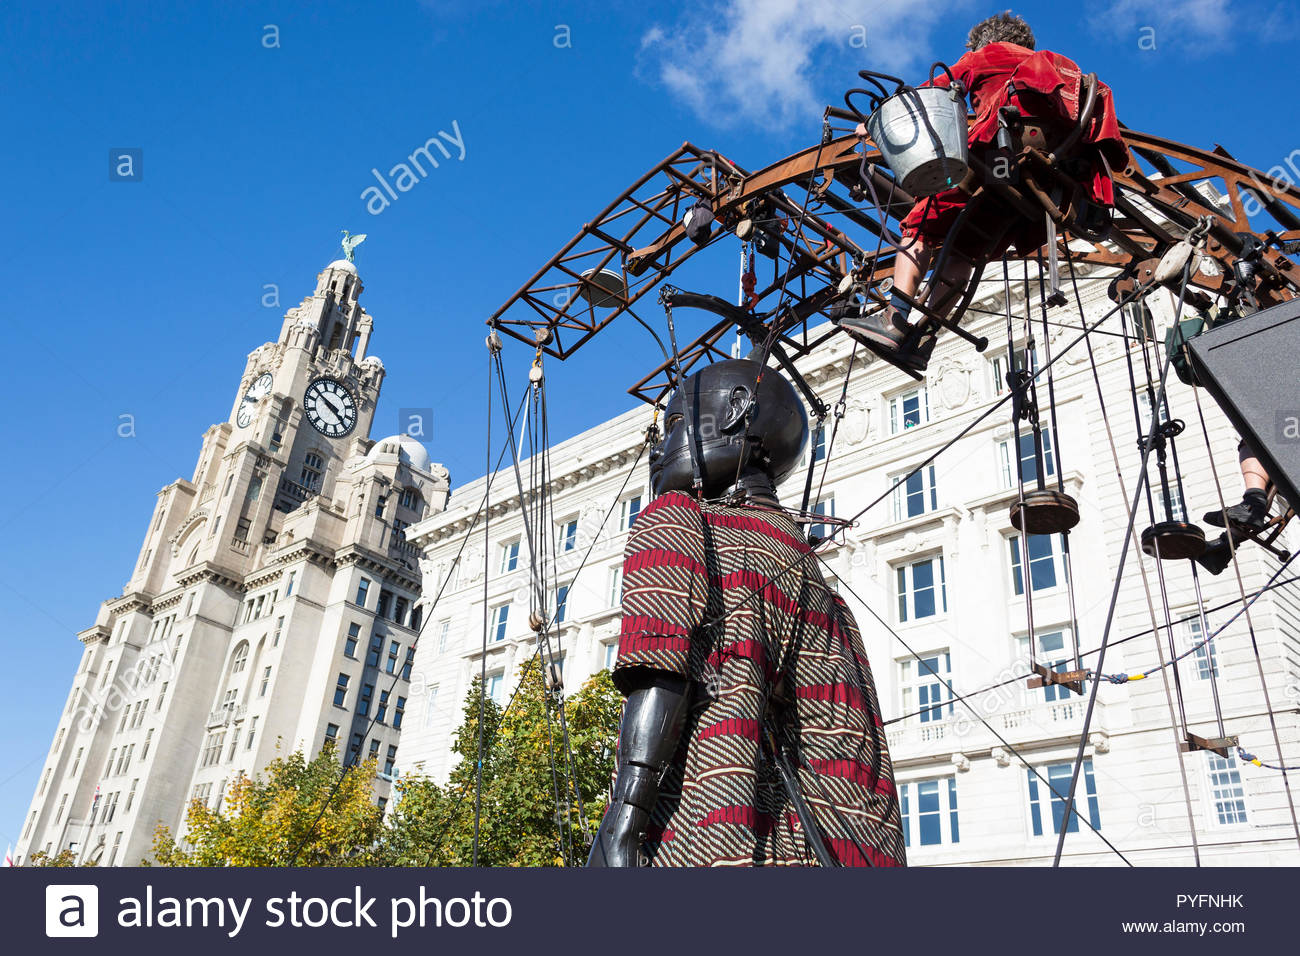 Little Boy Giant puppet and Royal de Luxe puppeteer walking past Cunard Building and Royal Liver Building, Liverpool, UK, Liverpool's Dream, 2018 - Stock Image